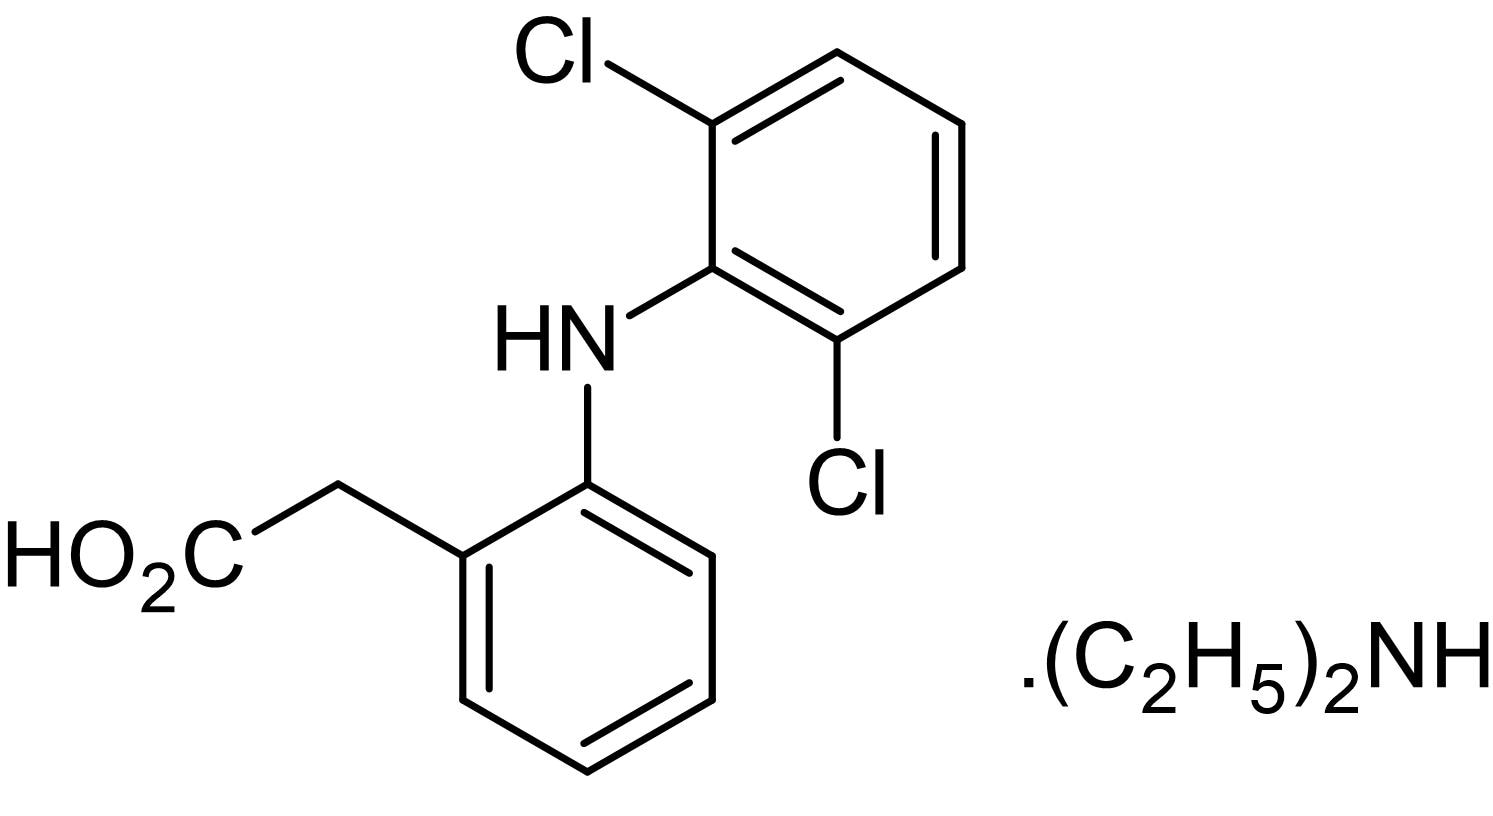 Chemical Structure - Diclofenac diethylamine, analgesic agent (ab145703)